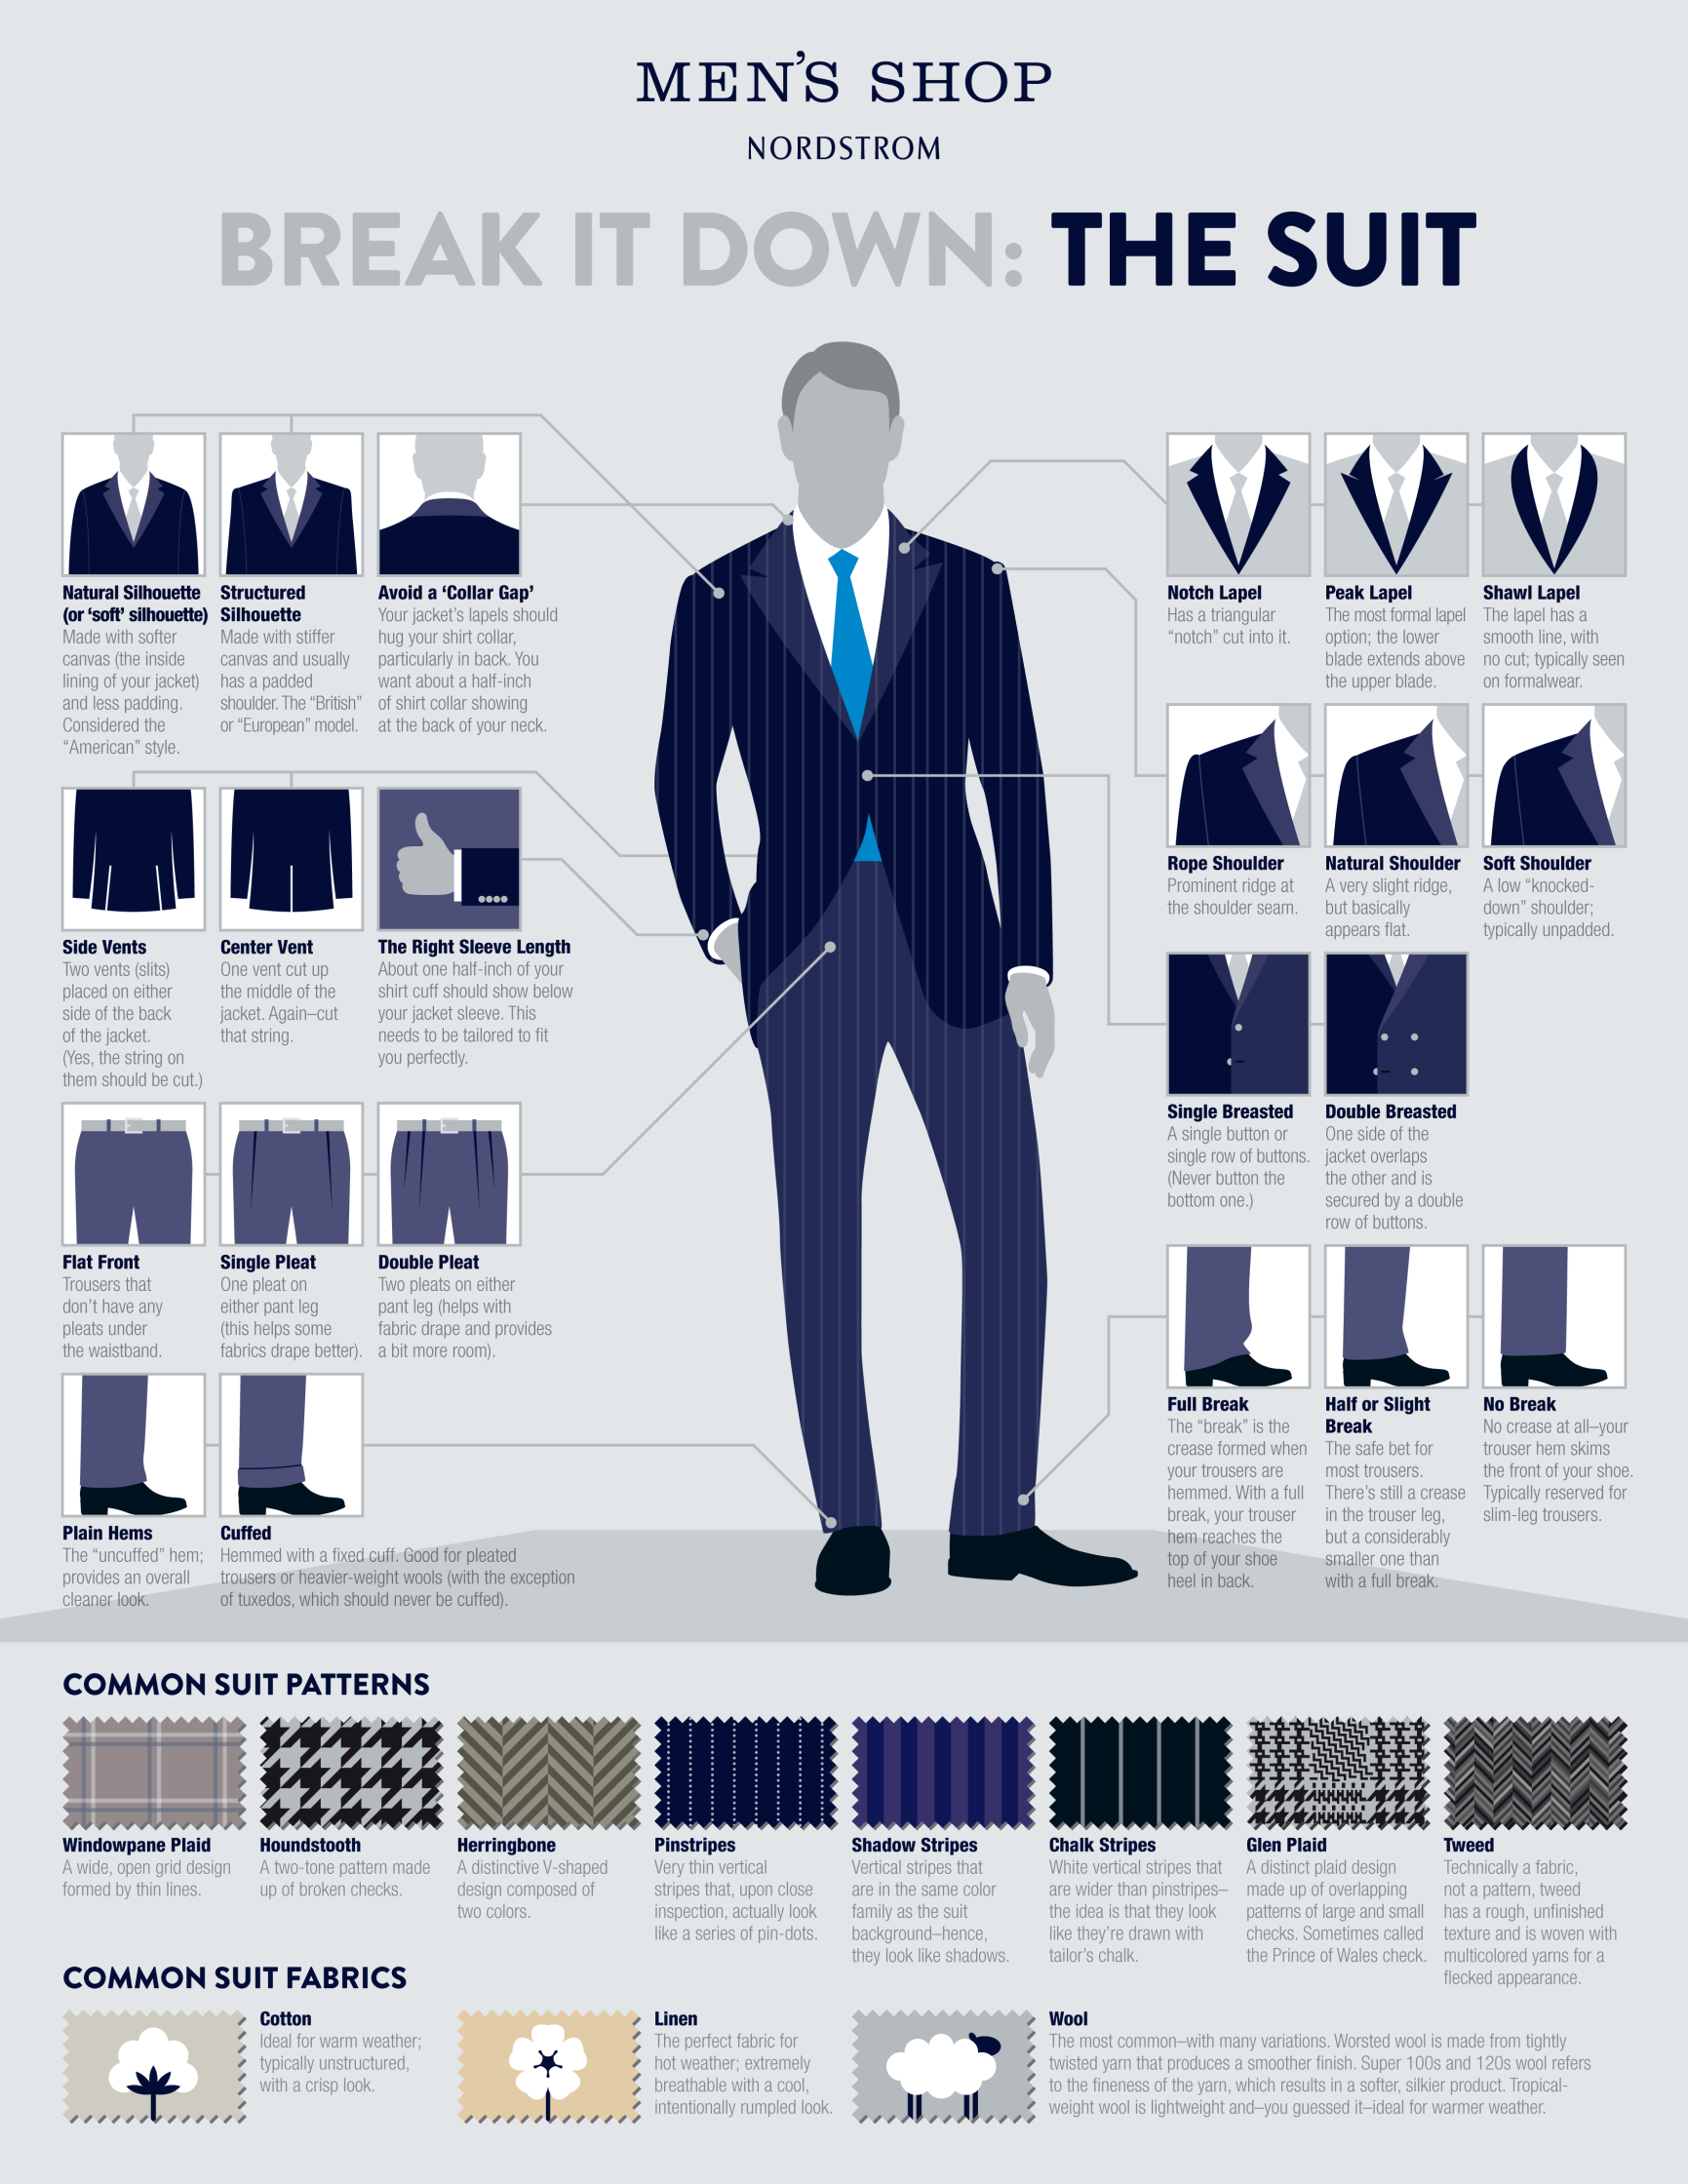 Nordstrom the Suit Infographic